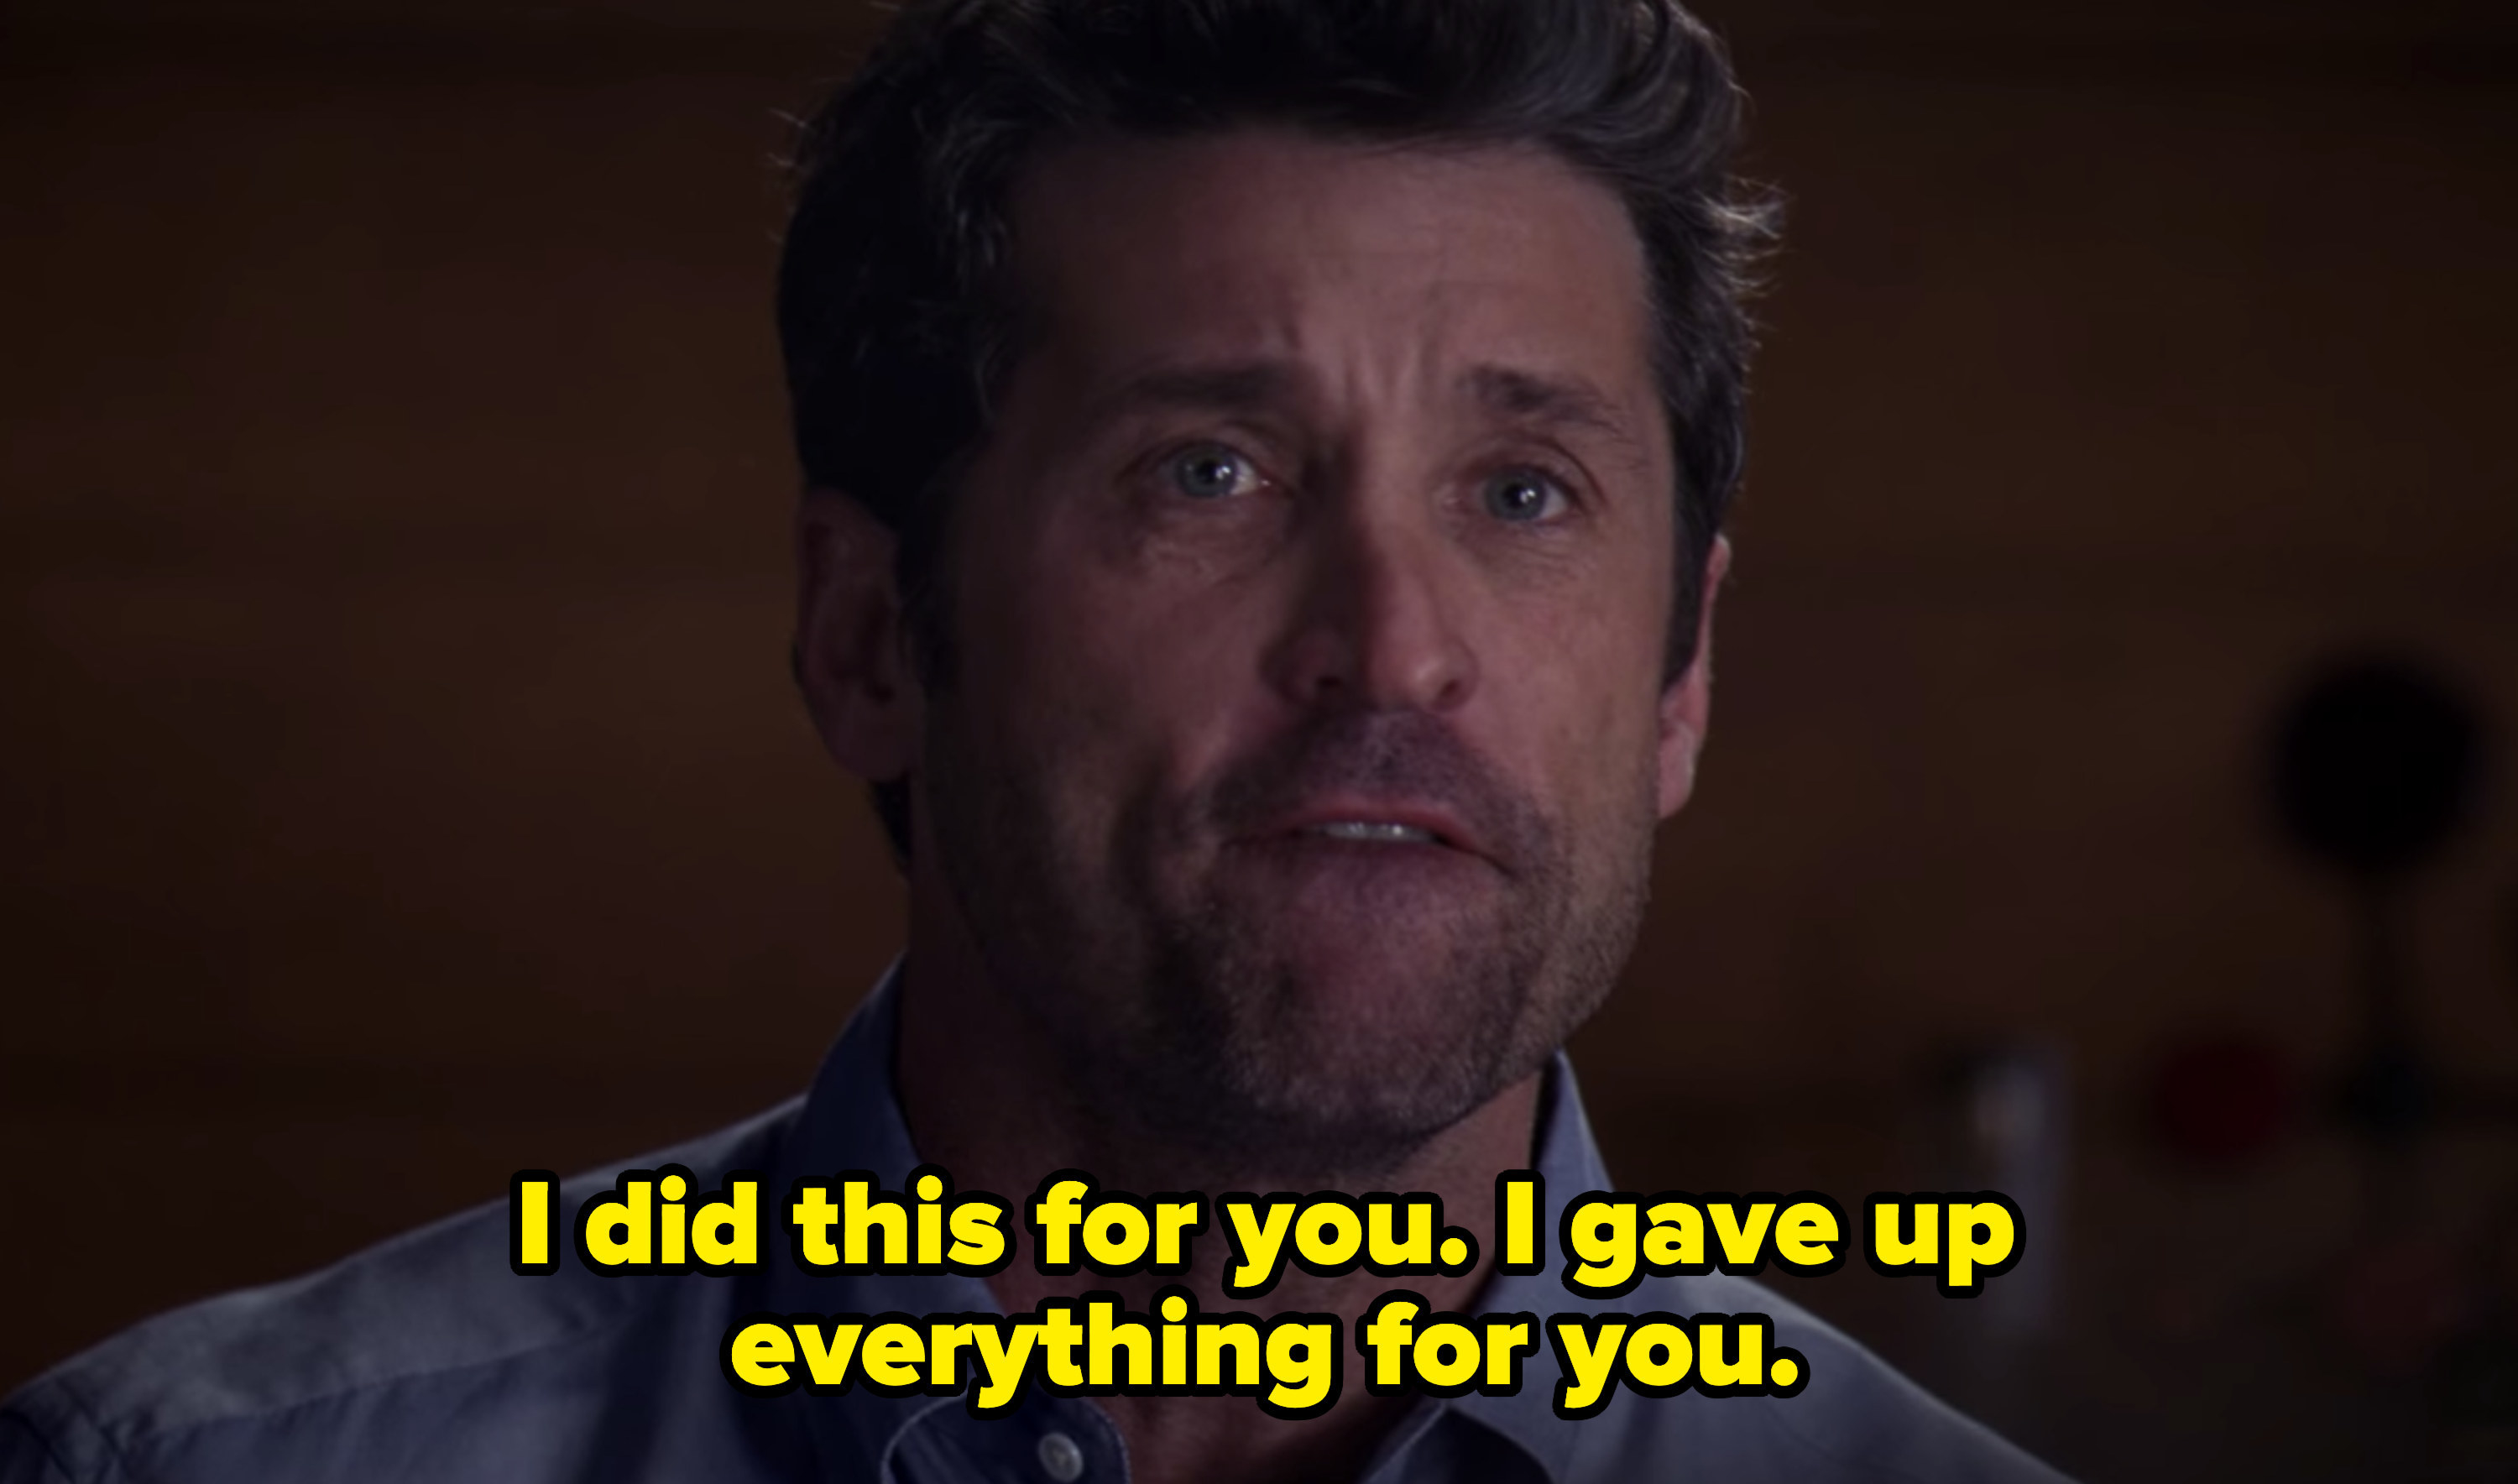 Derek Shepherd yelling at Meredith and telling her that he gave up everything for her.